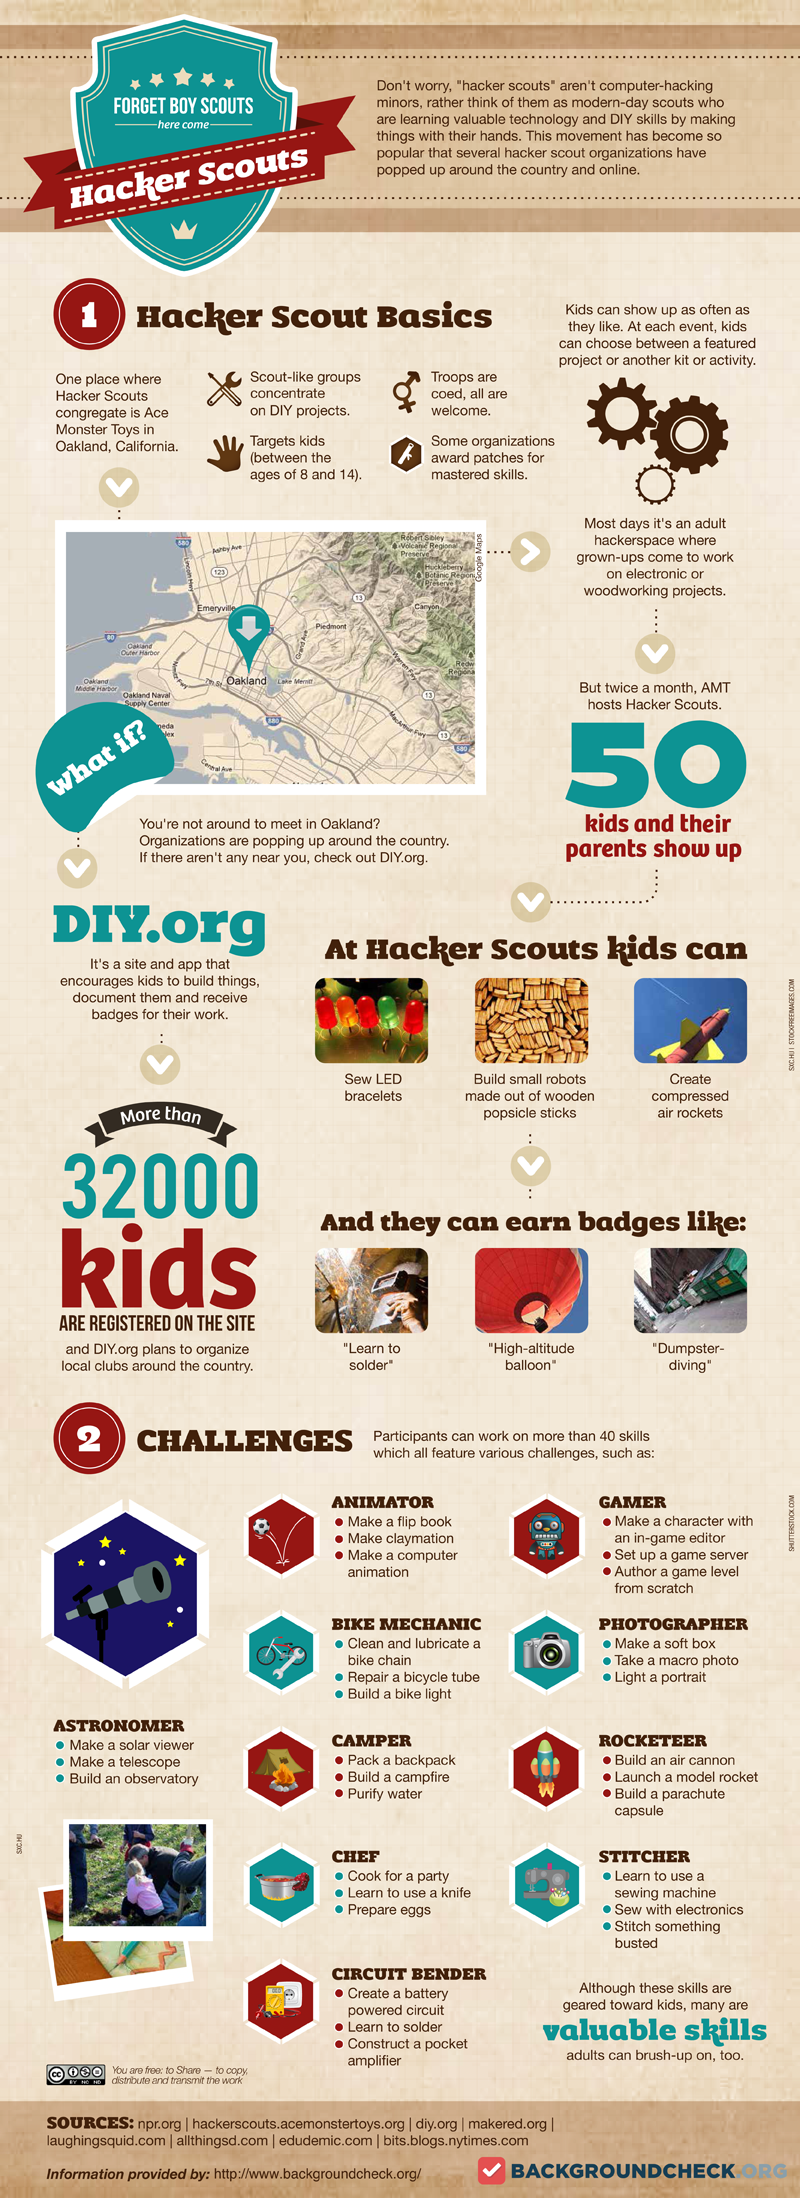 Forget Boy Scouts, Here Come Hacker Scouts (Infographic); Source: BackgroundCheck.org